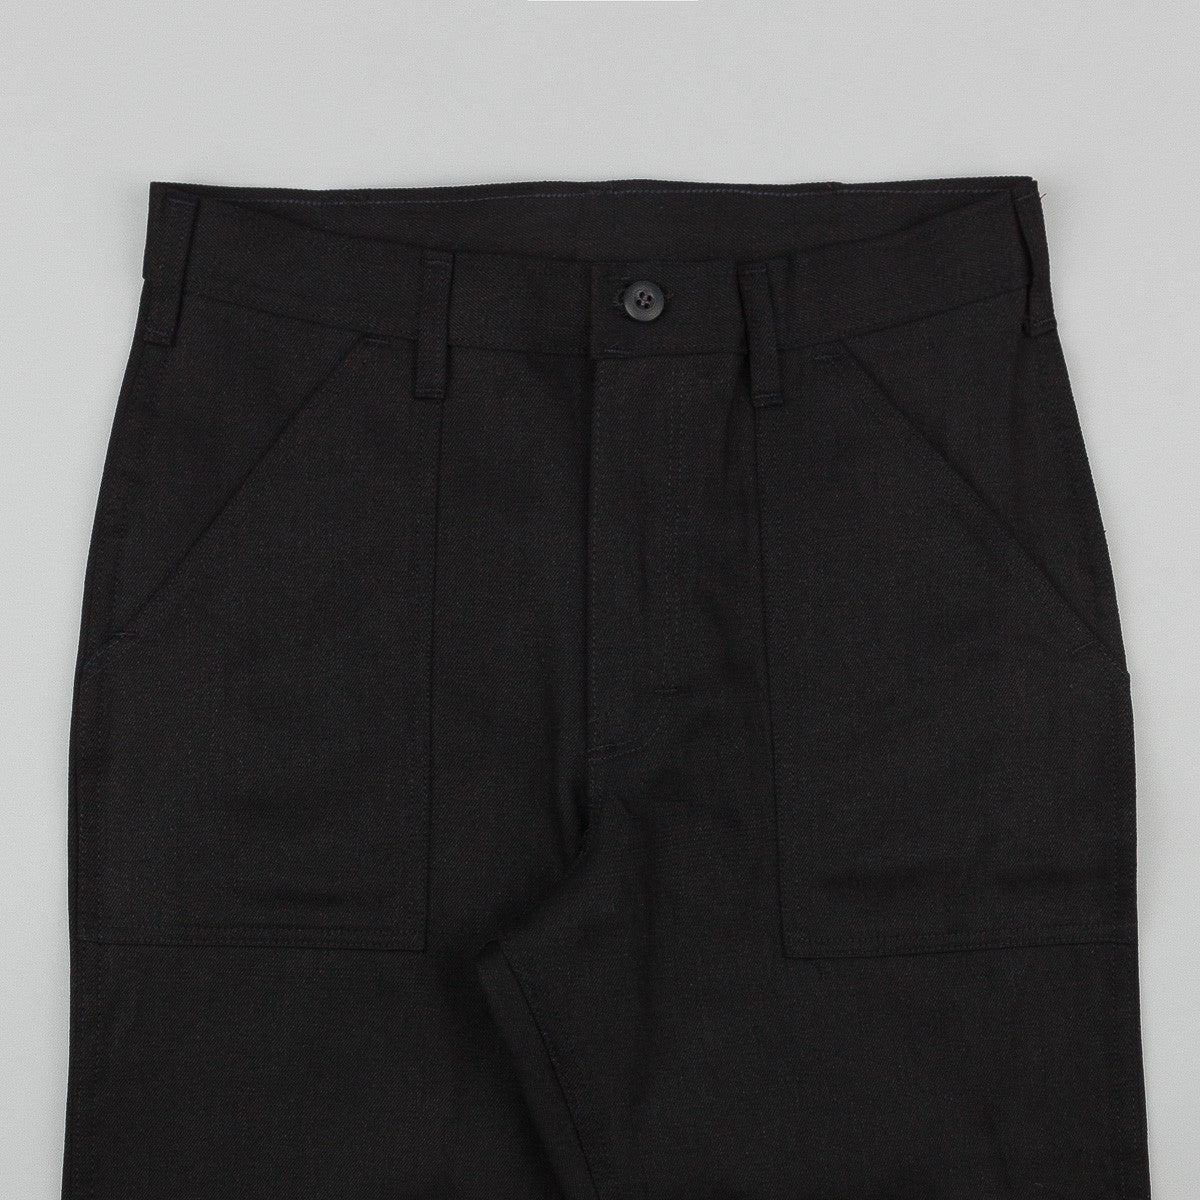 Stan Ray Taper 107 4 Pocket Fatigue Trousers - Black